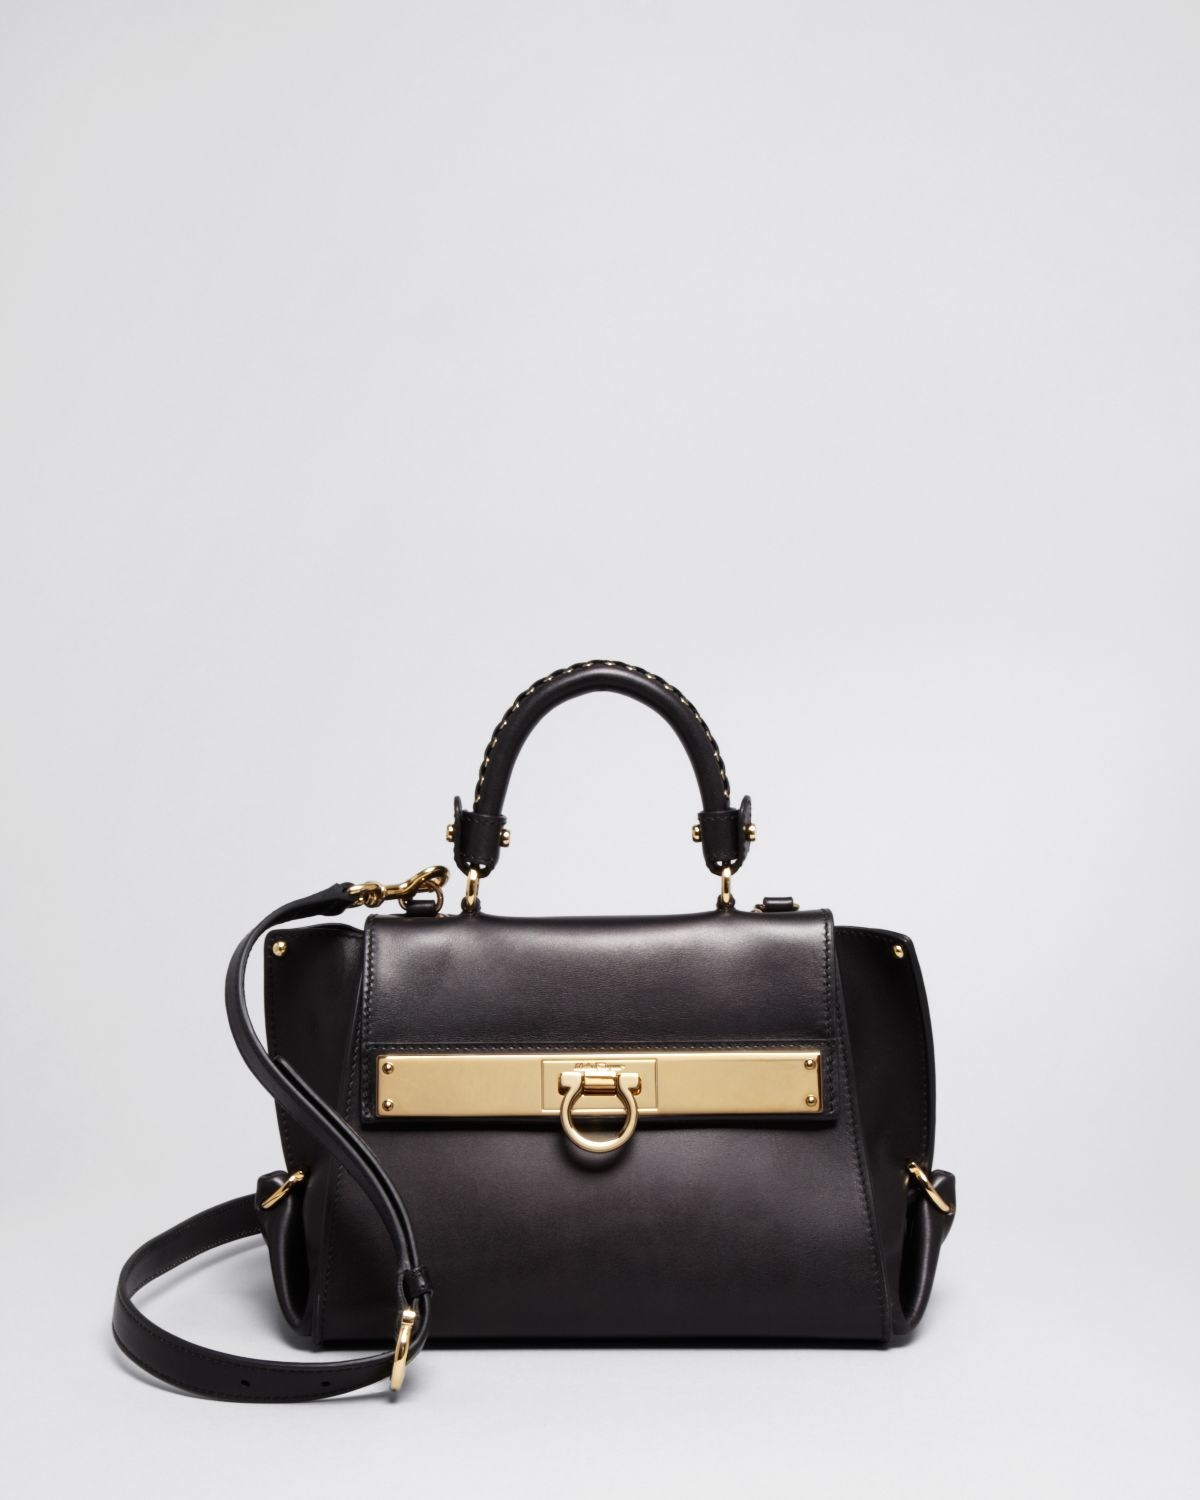 9f0ea11f49cc Lyst - Ferragamo Crossbody - Metal Plate Grommet Mini Sofia in Black